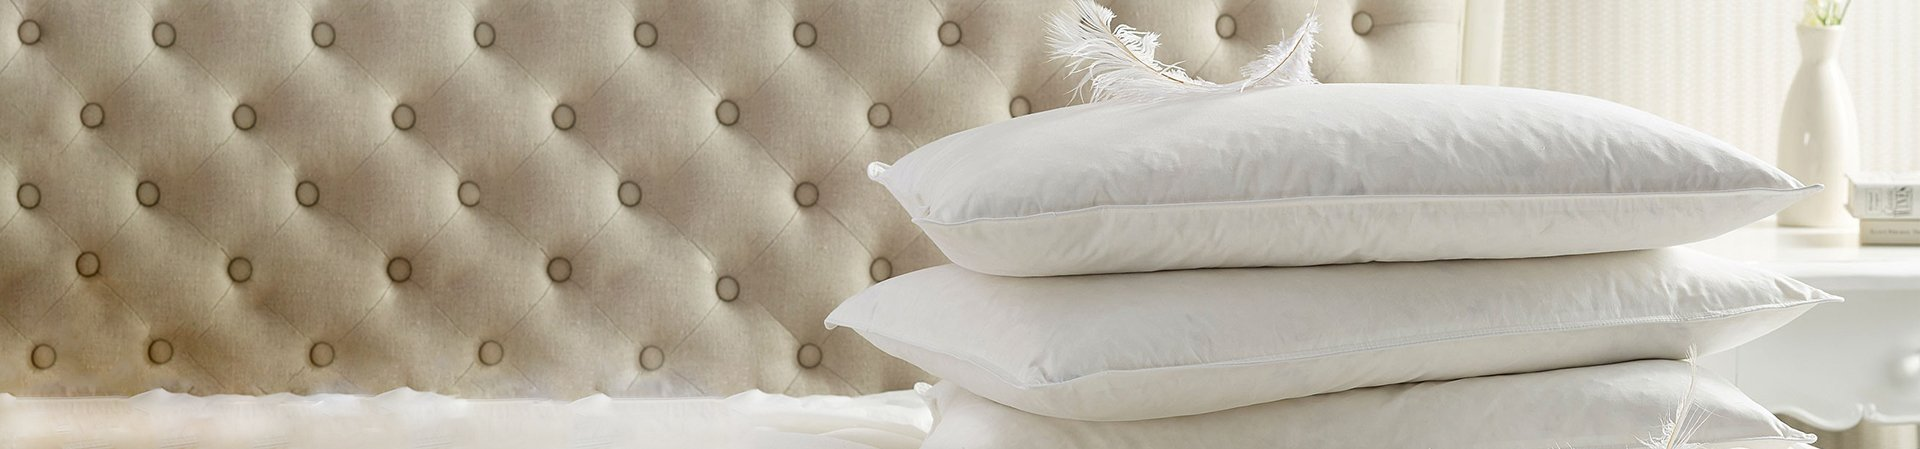 Best Feather Pillows Reviewed in Detail